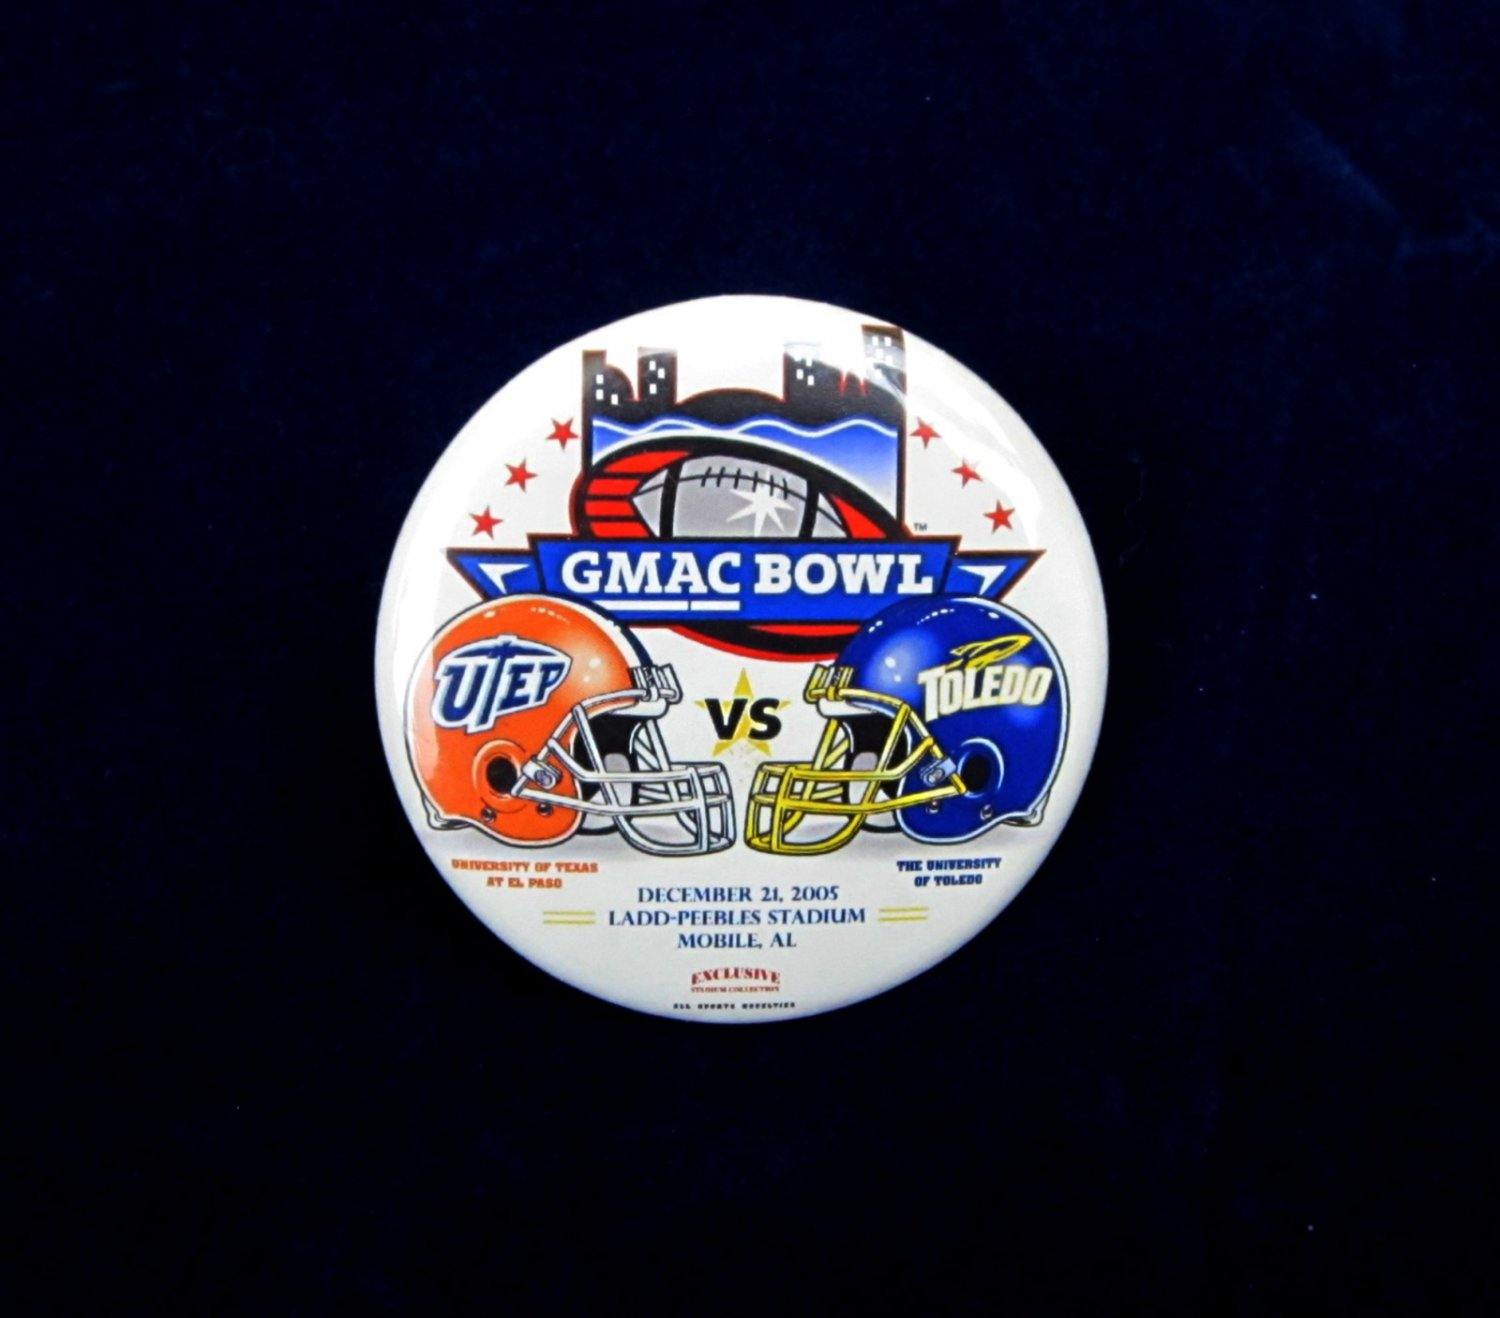 2005 GMAC Bowl Badge